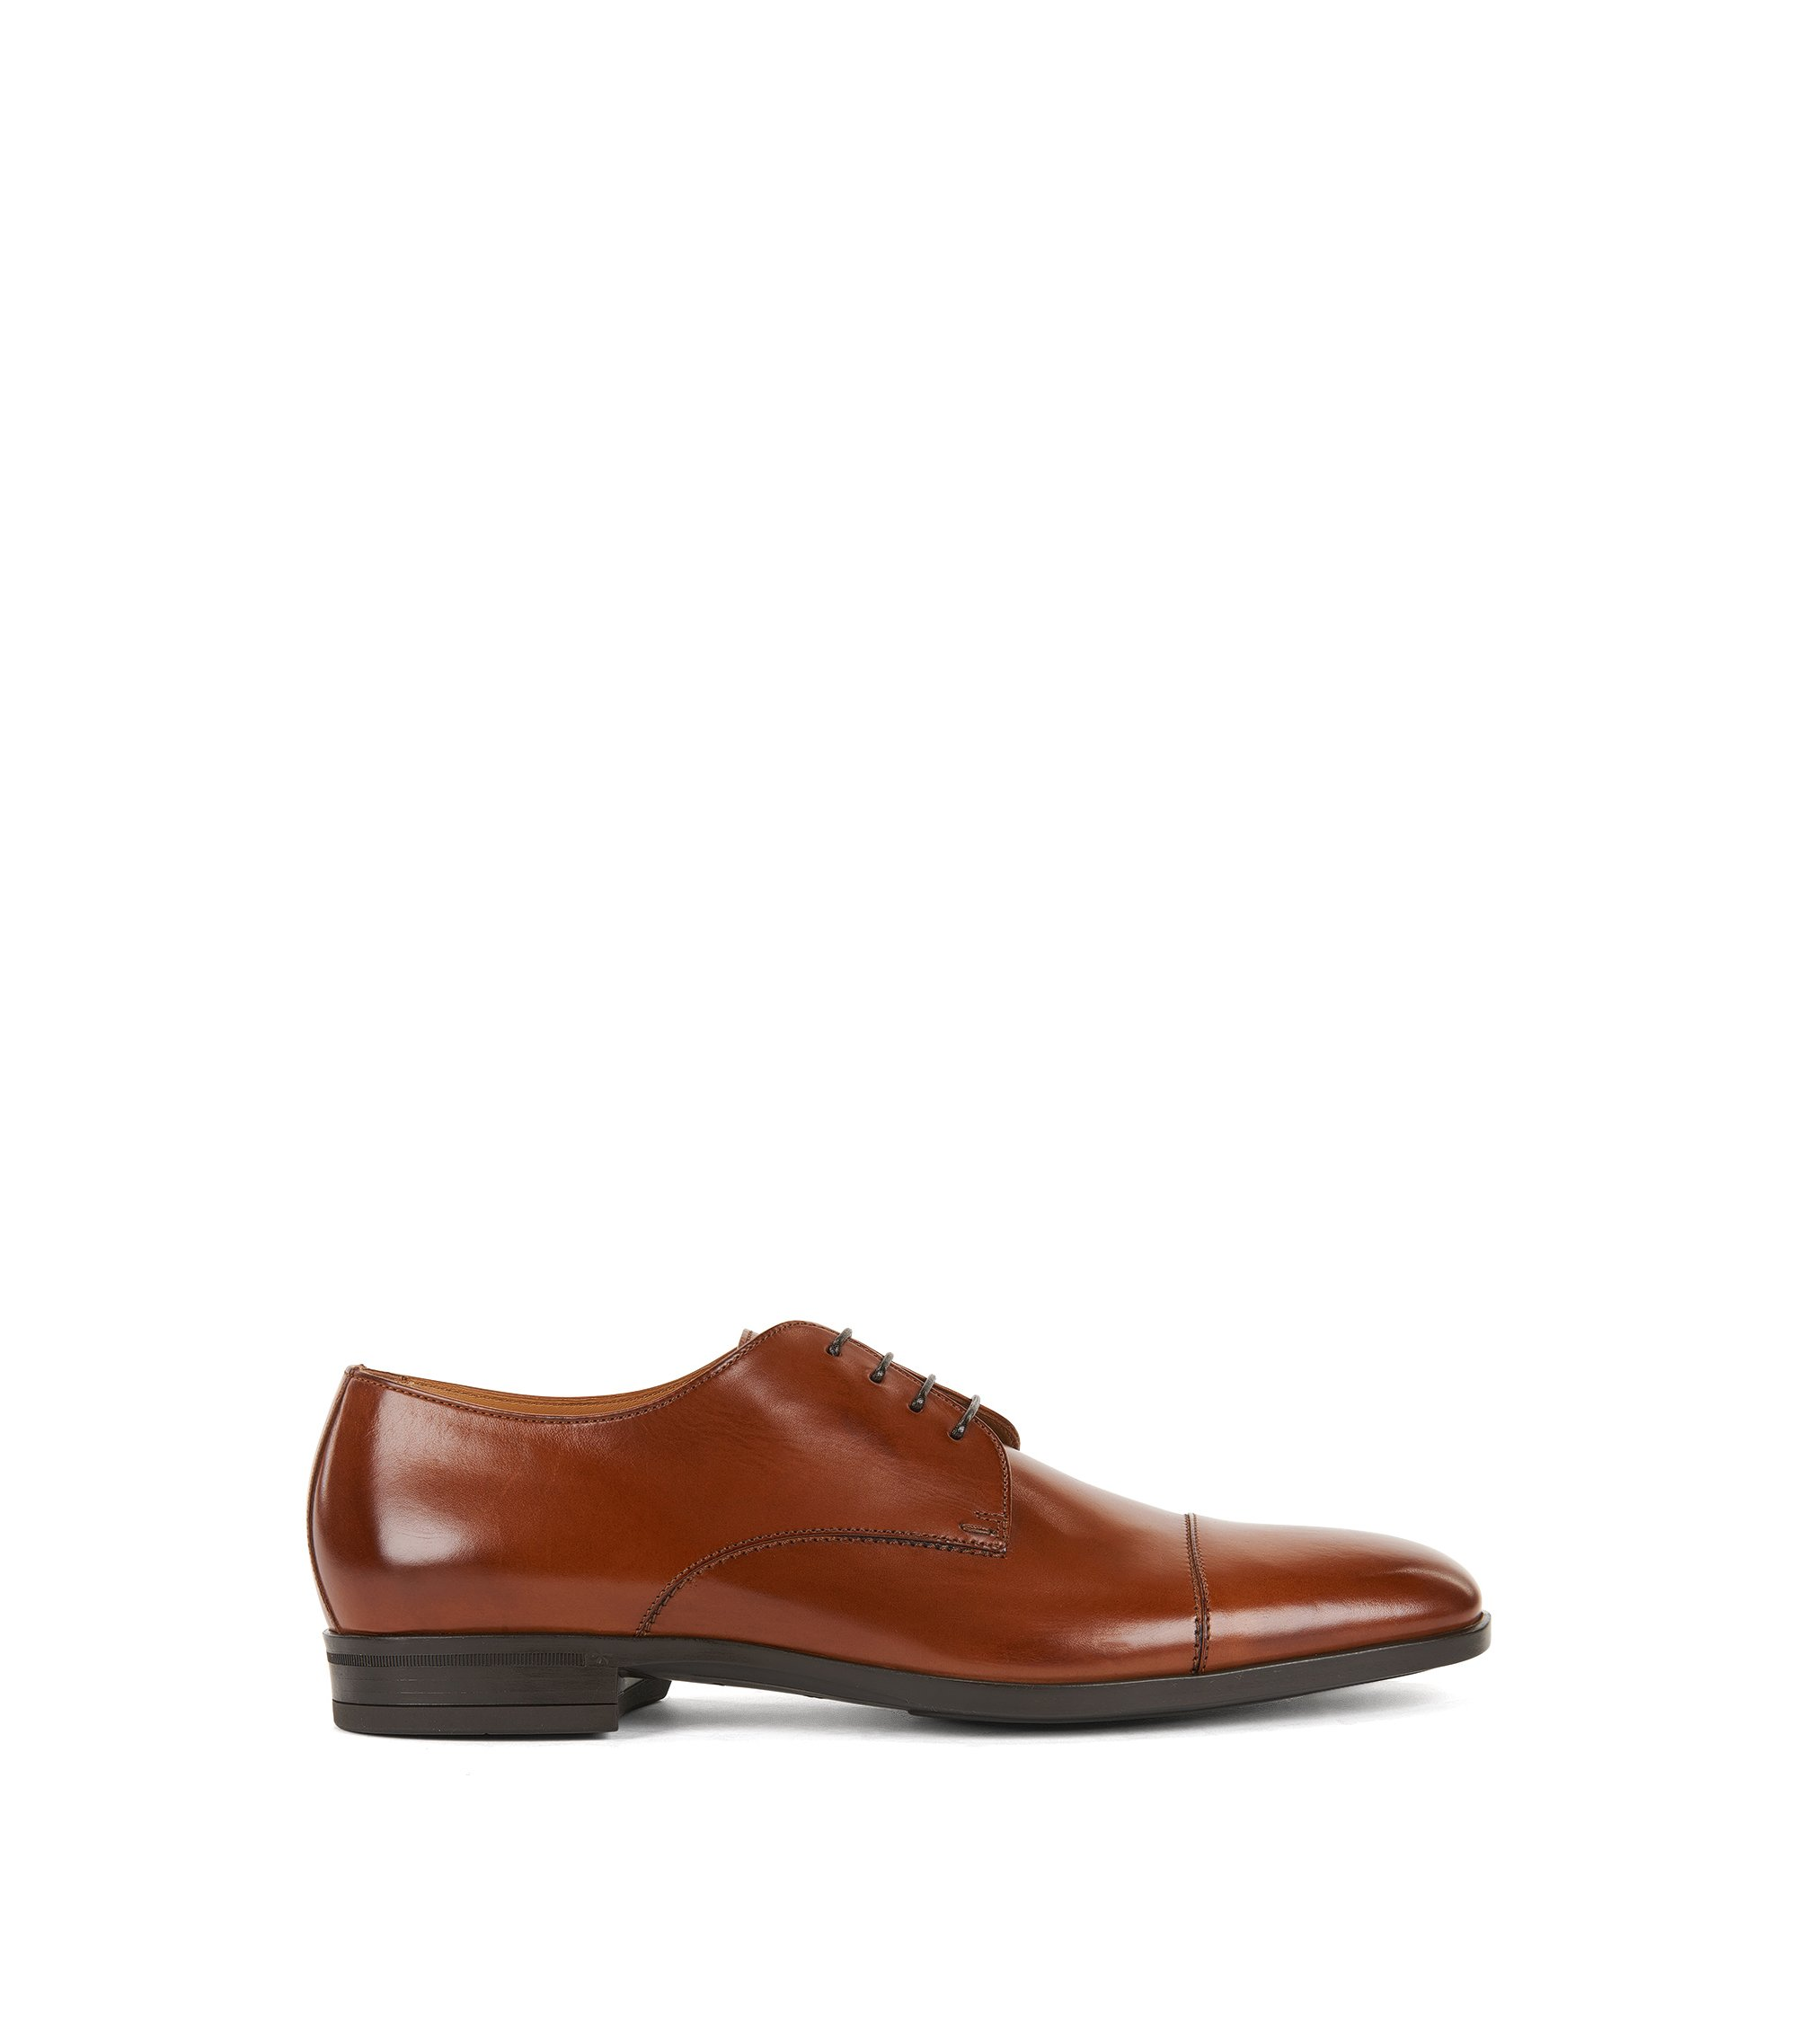 Cap-Toe Derby Shoe | Kensington, Brown